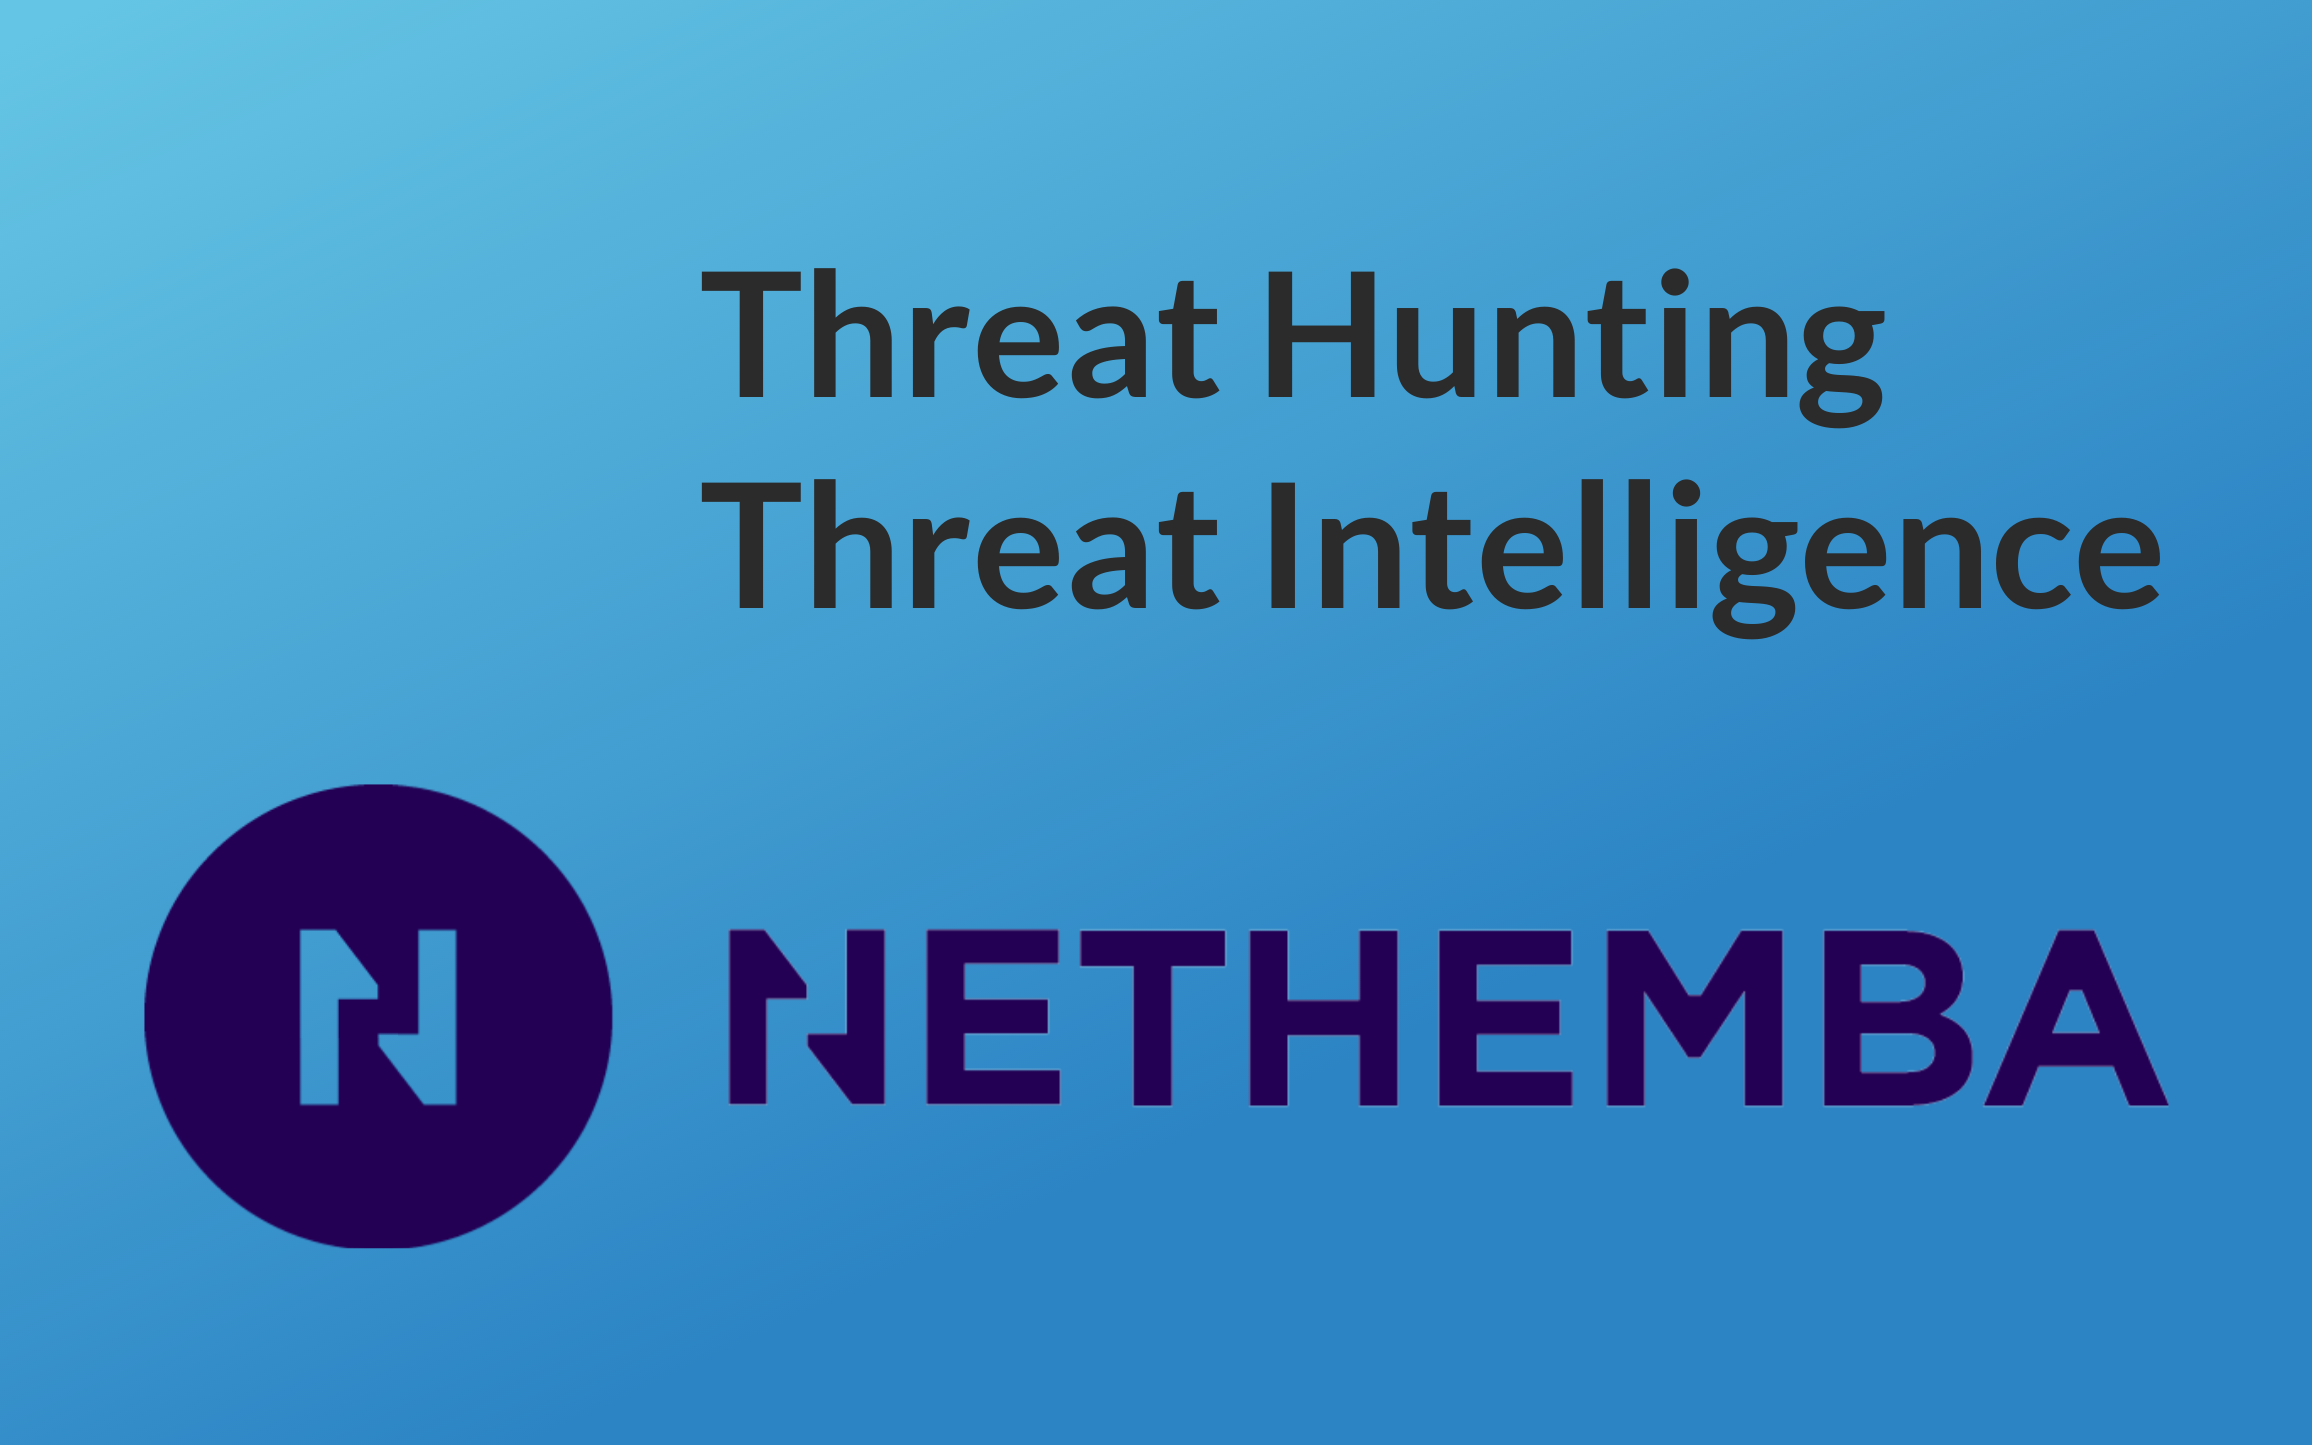 Threat Hunting and Threat Intelligence services